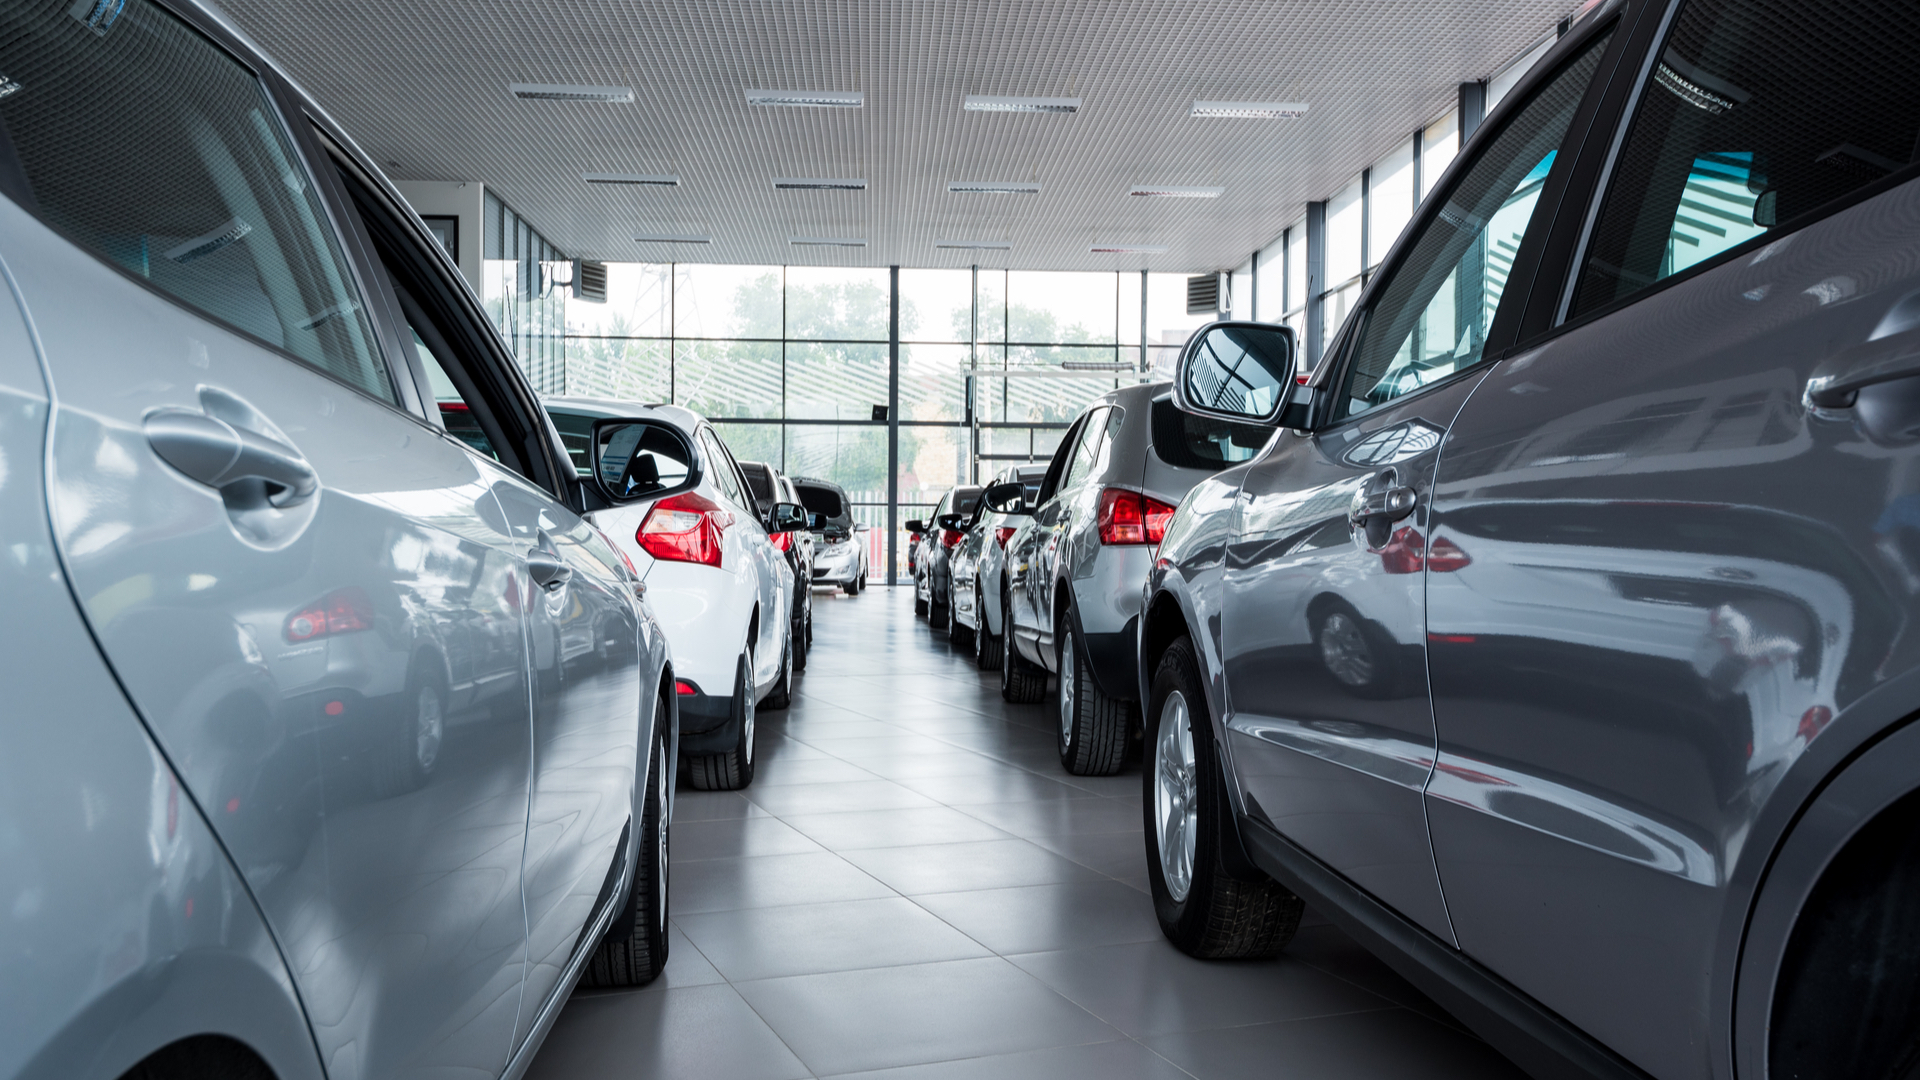 Cars for sale in showroom